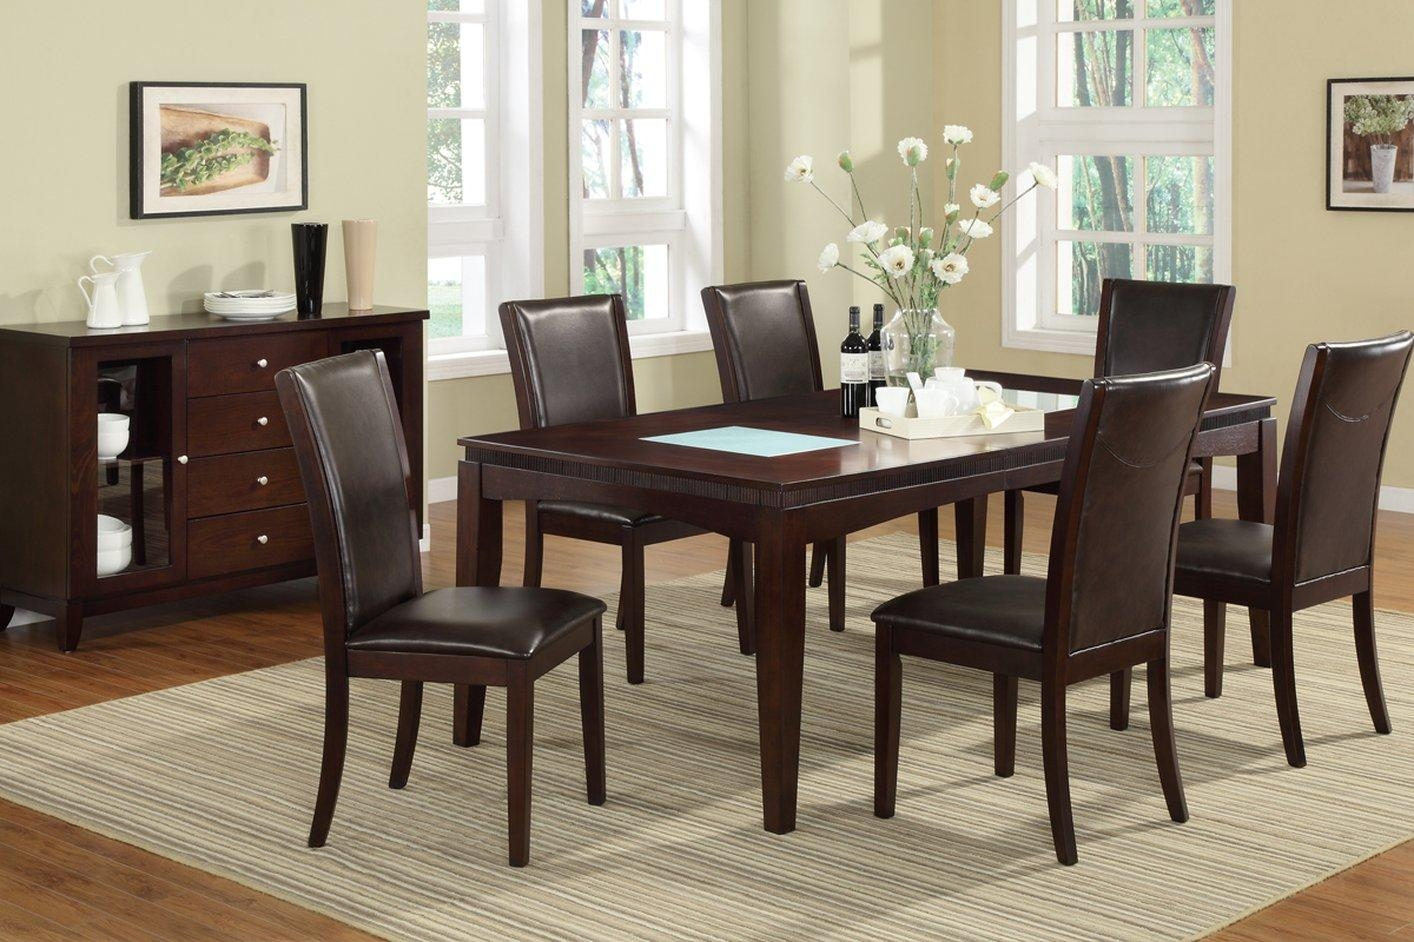 Poundex F2165 Brown Glass Dining Table – Steal A Sofa Furniture Regarding Dining Table With Sofa Chairs (View 2 of 20)